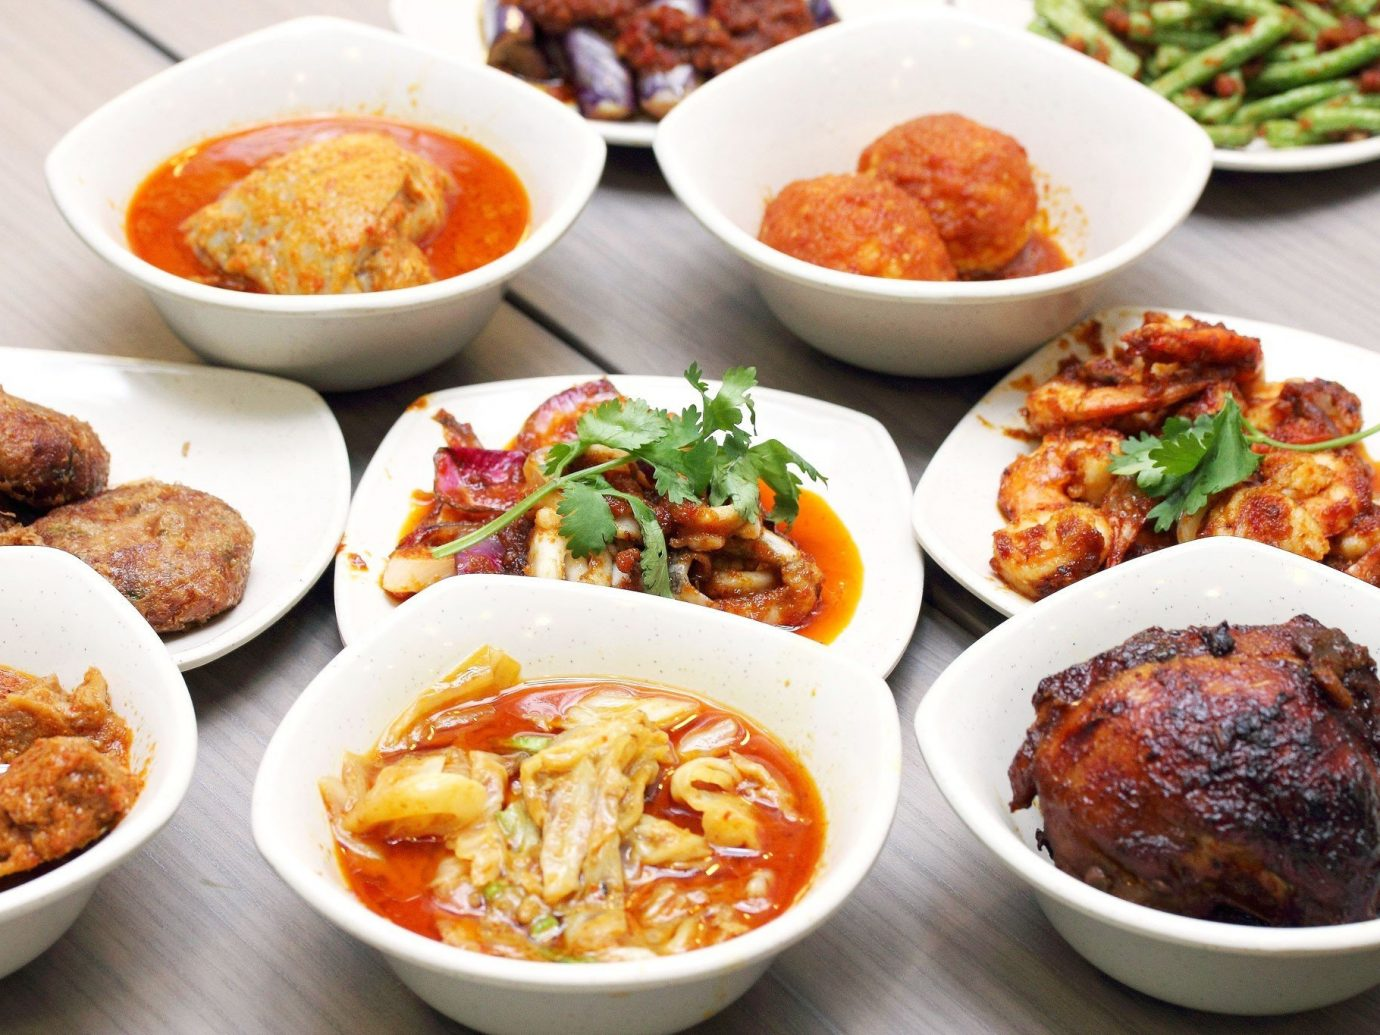 Food + Drink food plate table bowl dish different cuisine meal asian food several many lunch banchan chinese food southeast asian food side dish meat vegetable various containing